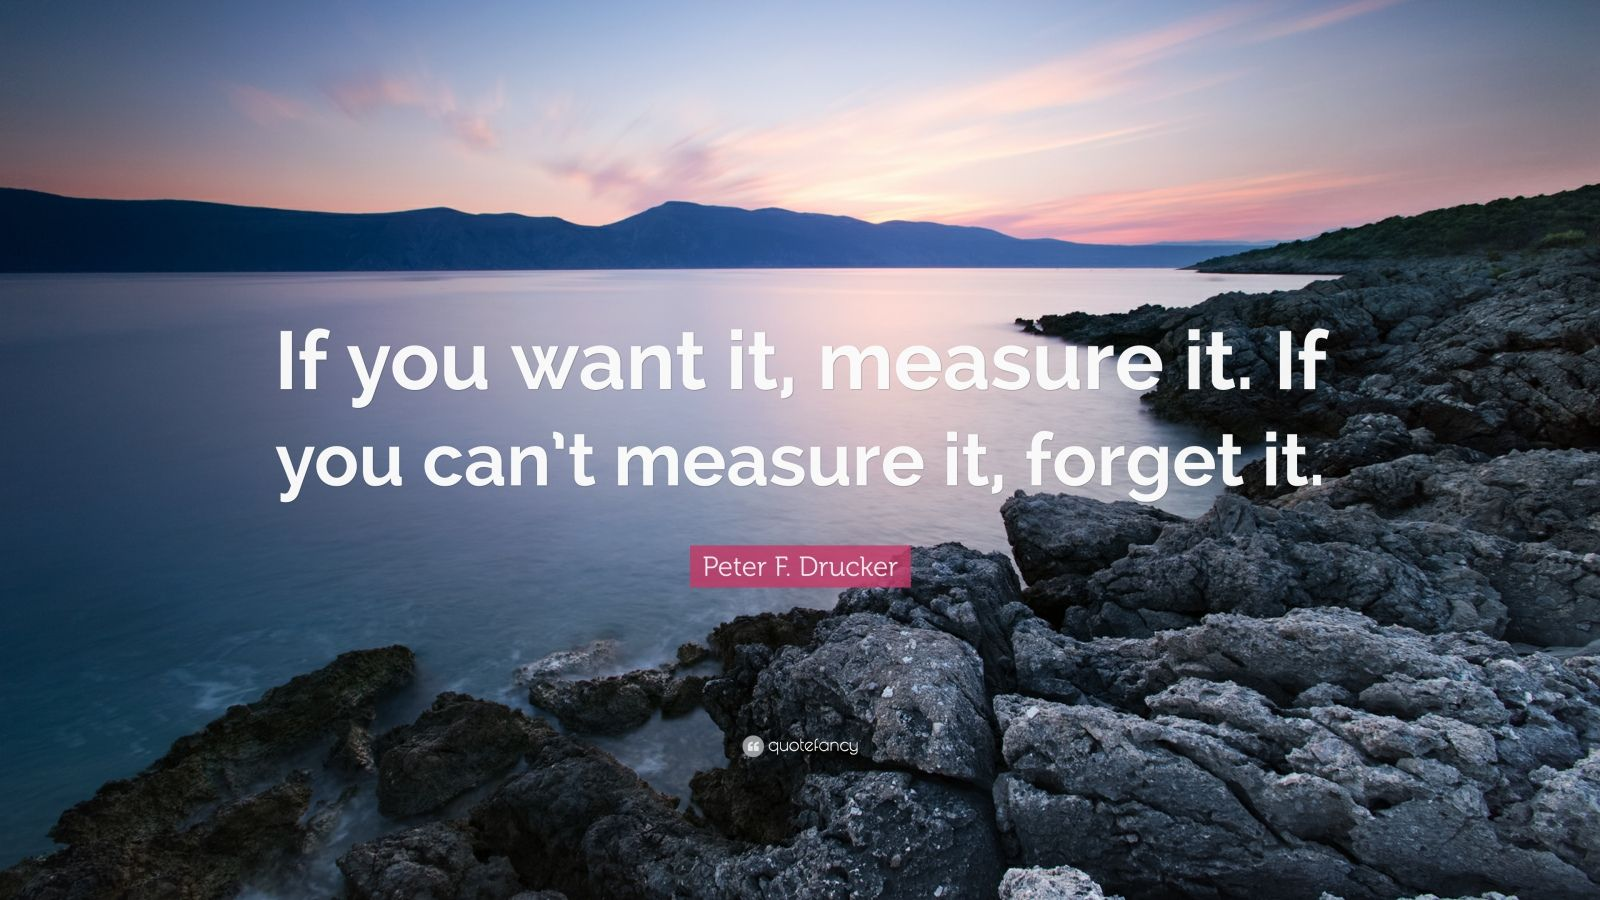 """Peter F. Drucker Quote: """"If you want it, measure it. If you can't measure it, forget it."""""""